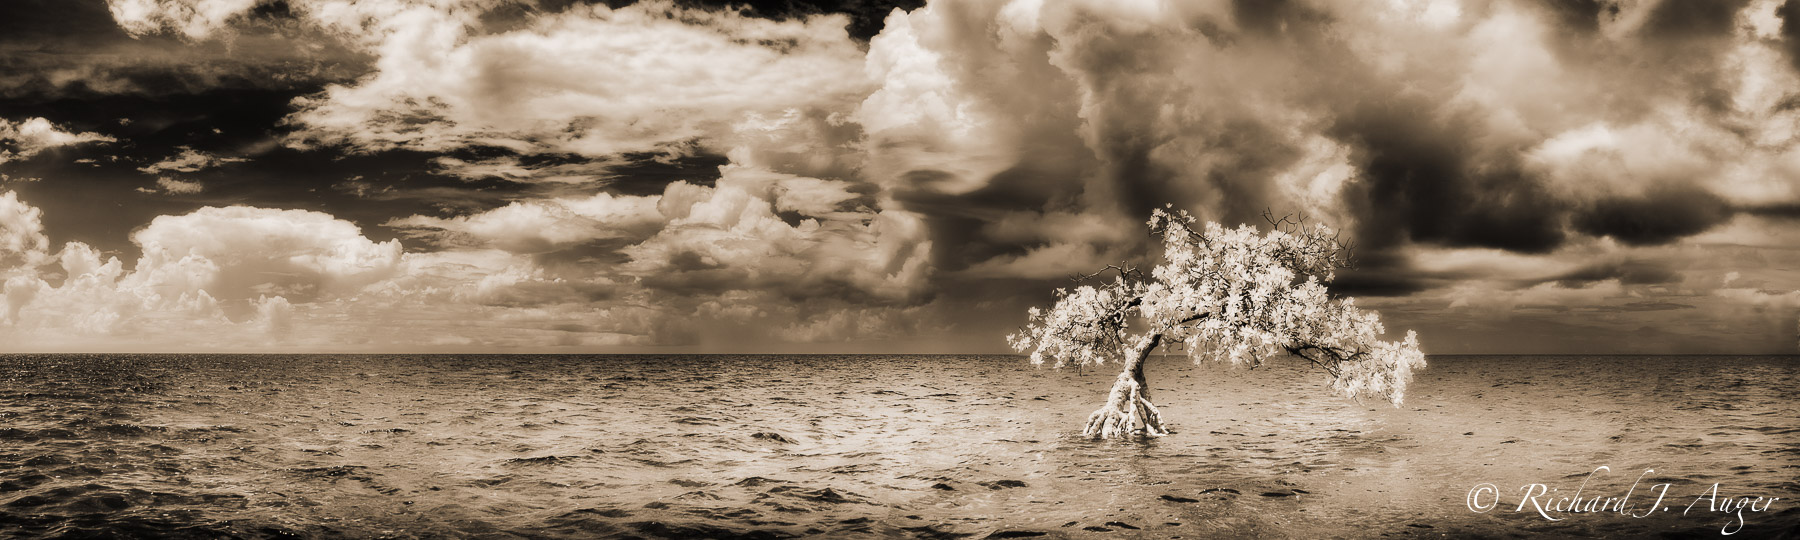 Long Mangrove State Park, Florida Keys, Storm, Moody, Sepia, Monochrome, light, photograph, photographer, water, landscape, sepia tone, black and white, panorama